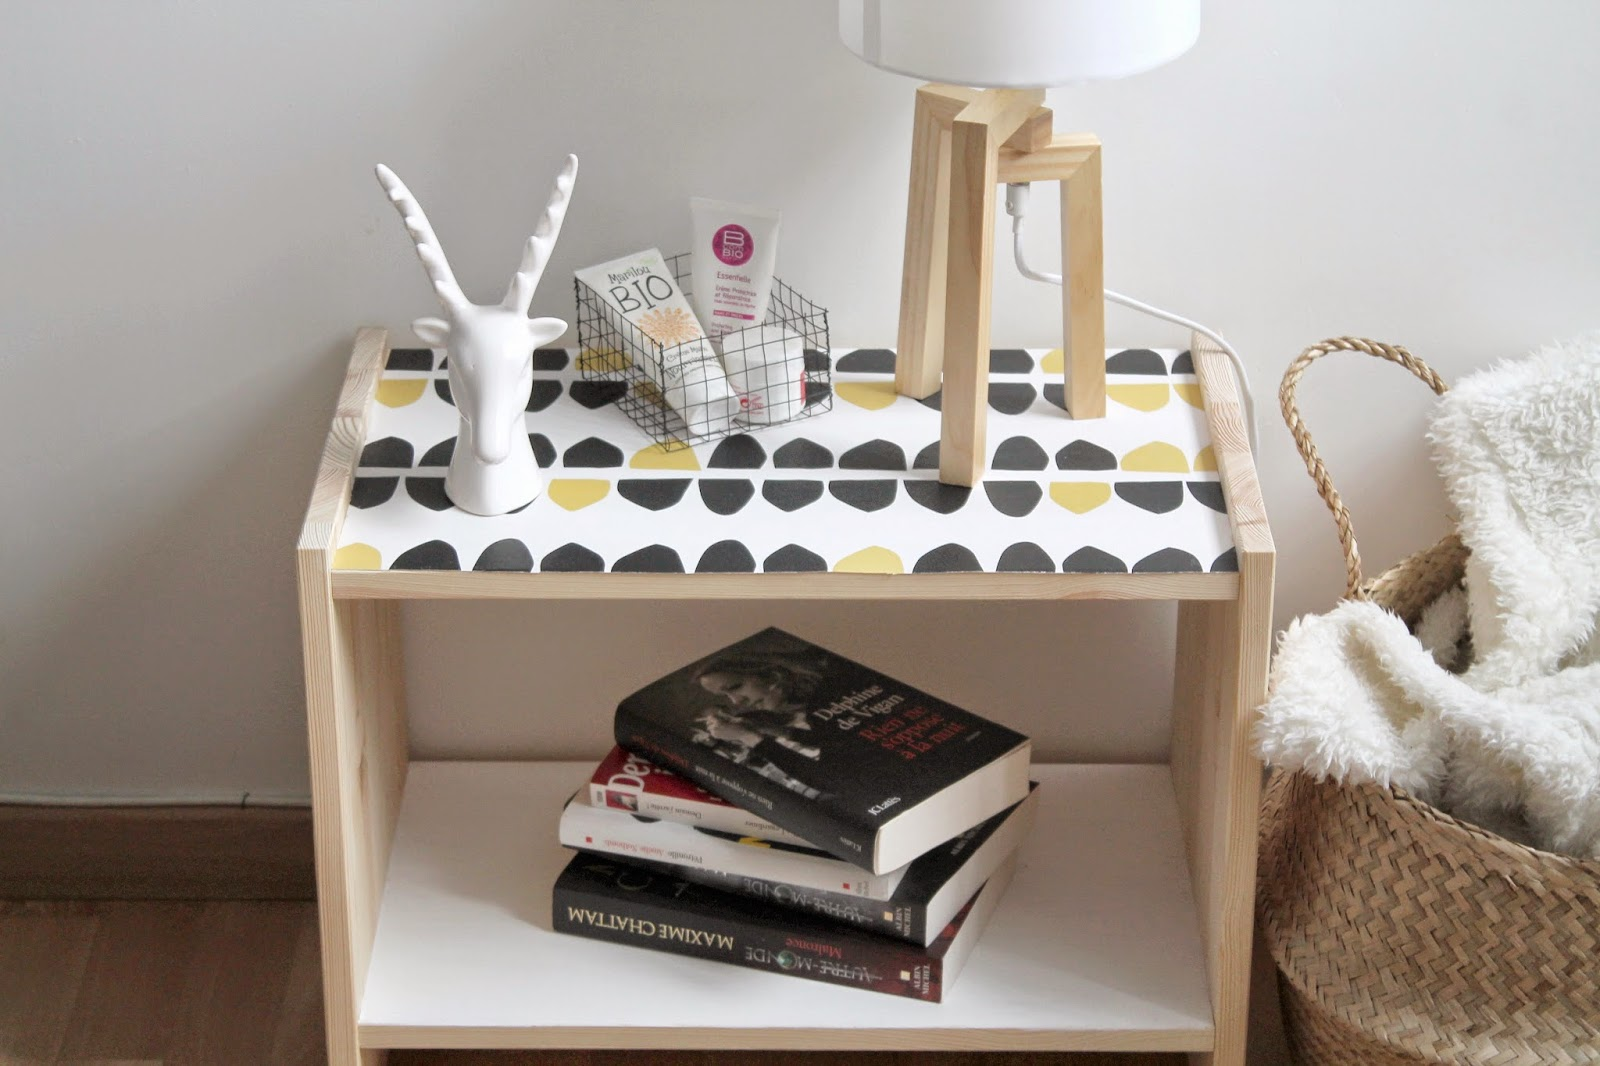 Diy customiser la table de chevet rast le bazar d for Table de chevet noir pas cher